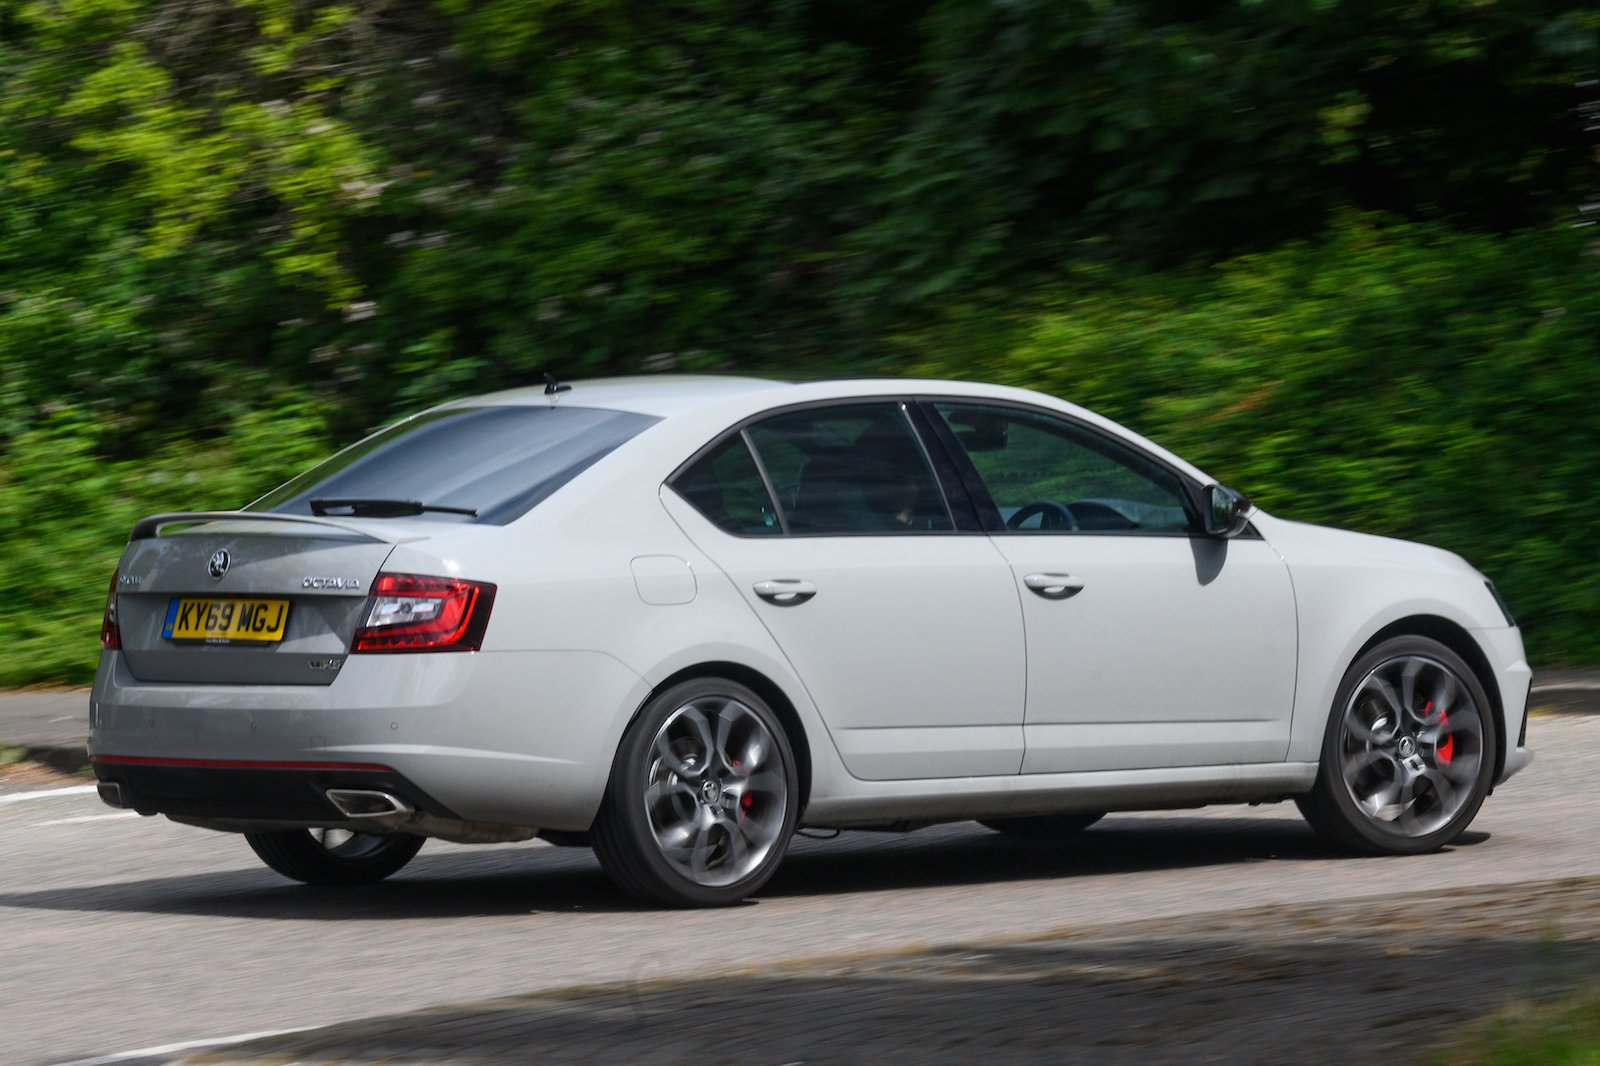 Skoda Octavia vRS long-term